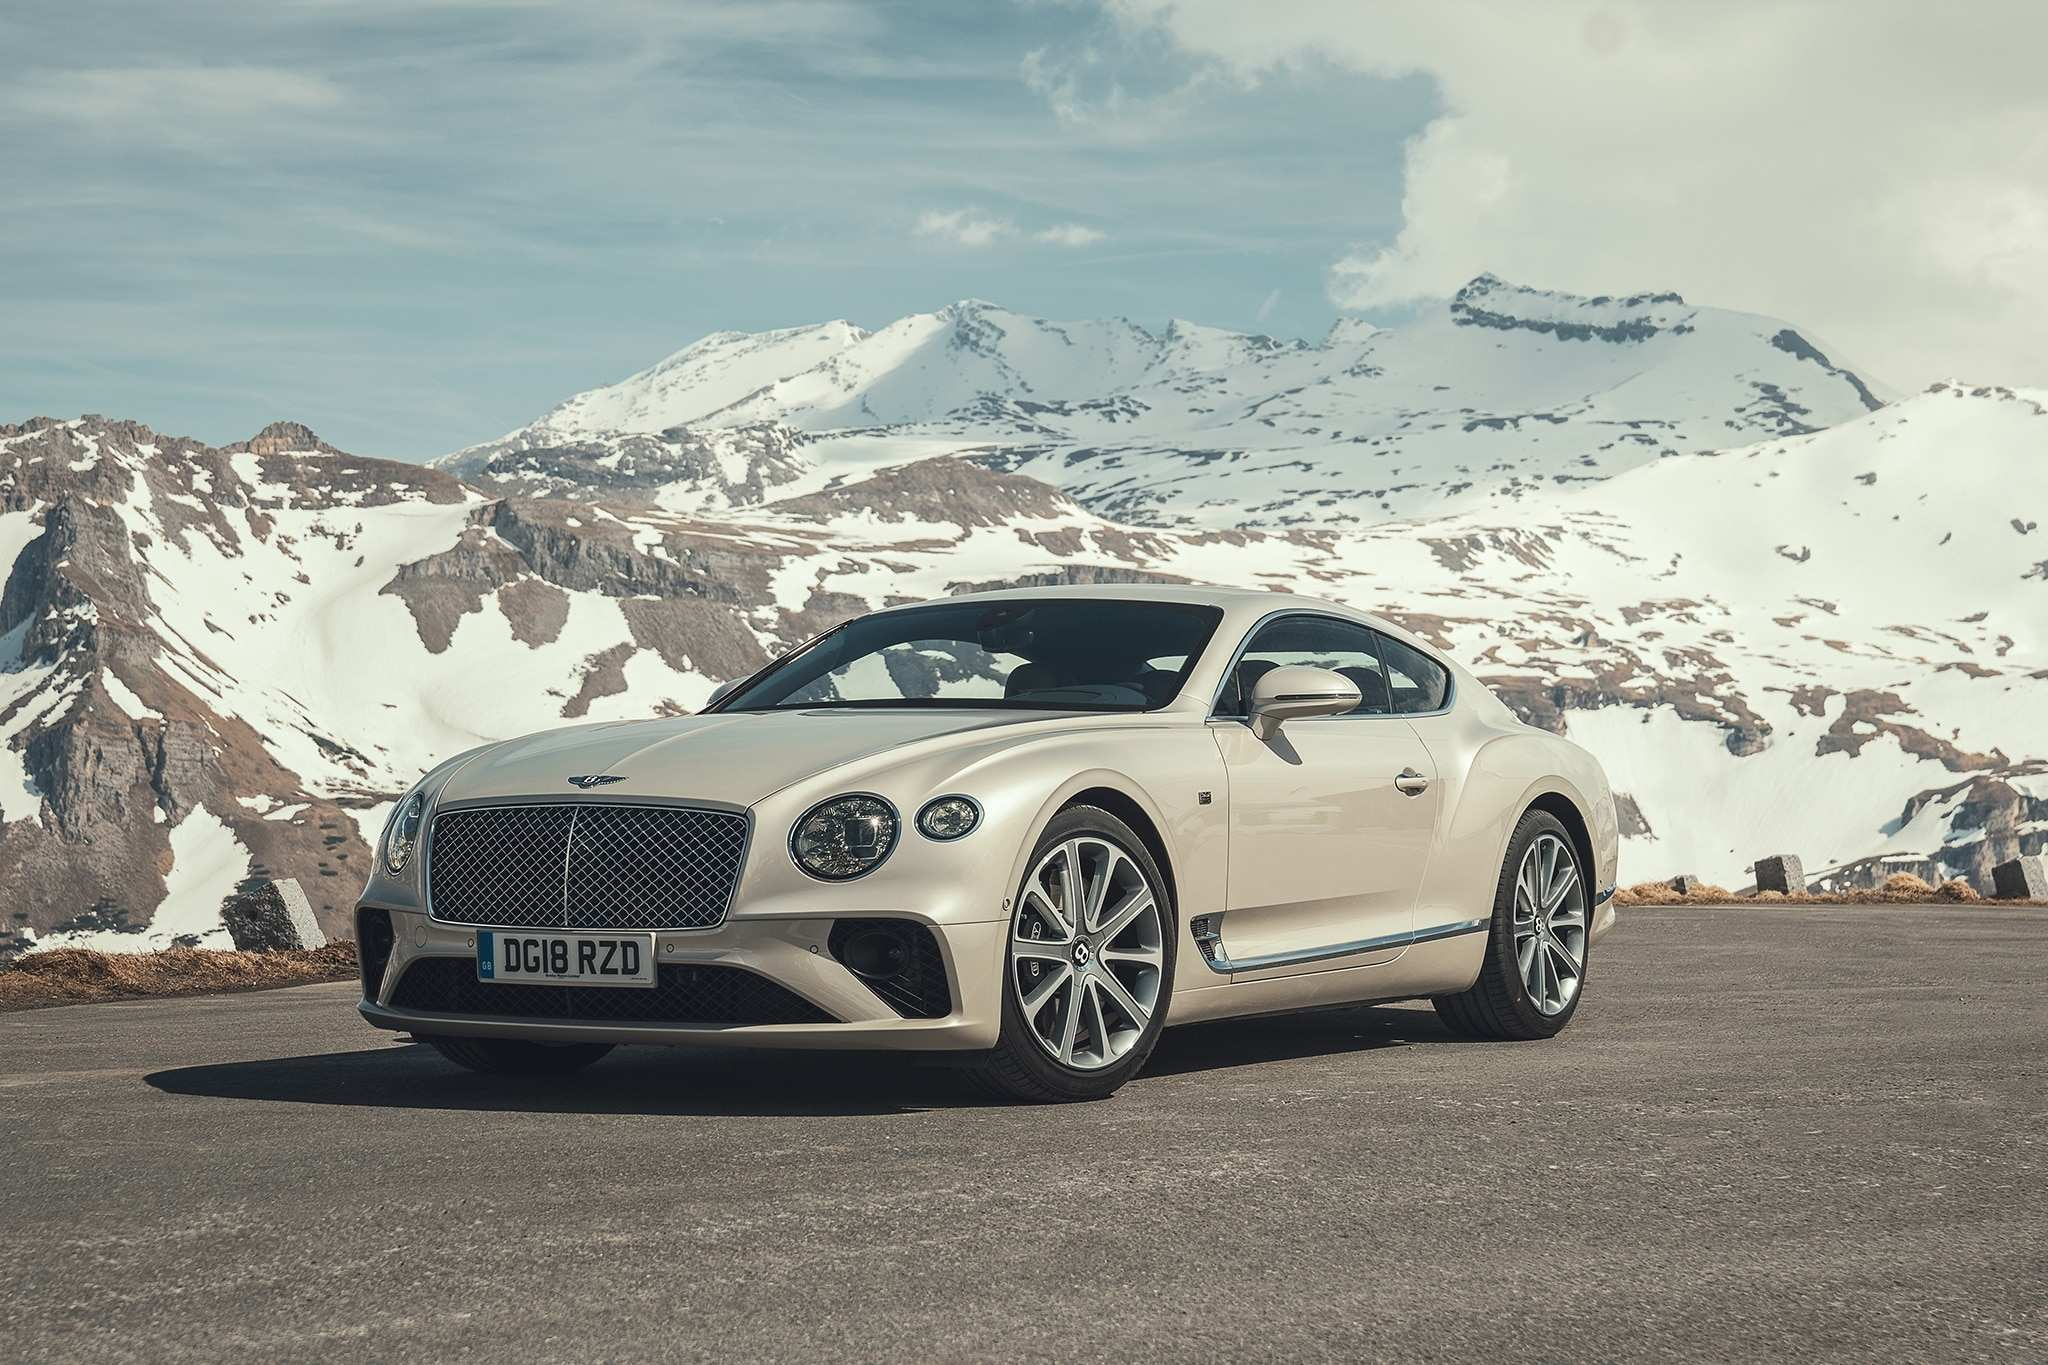 29 All New 2019 Bentley Continental Gt Specs Interior by 2019 Bentley Continental Gt Specs